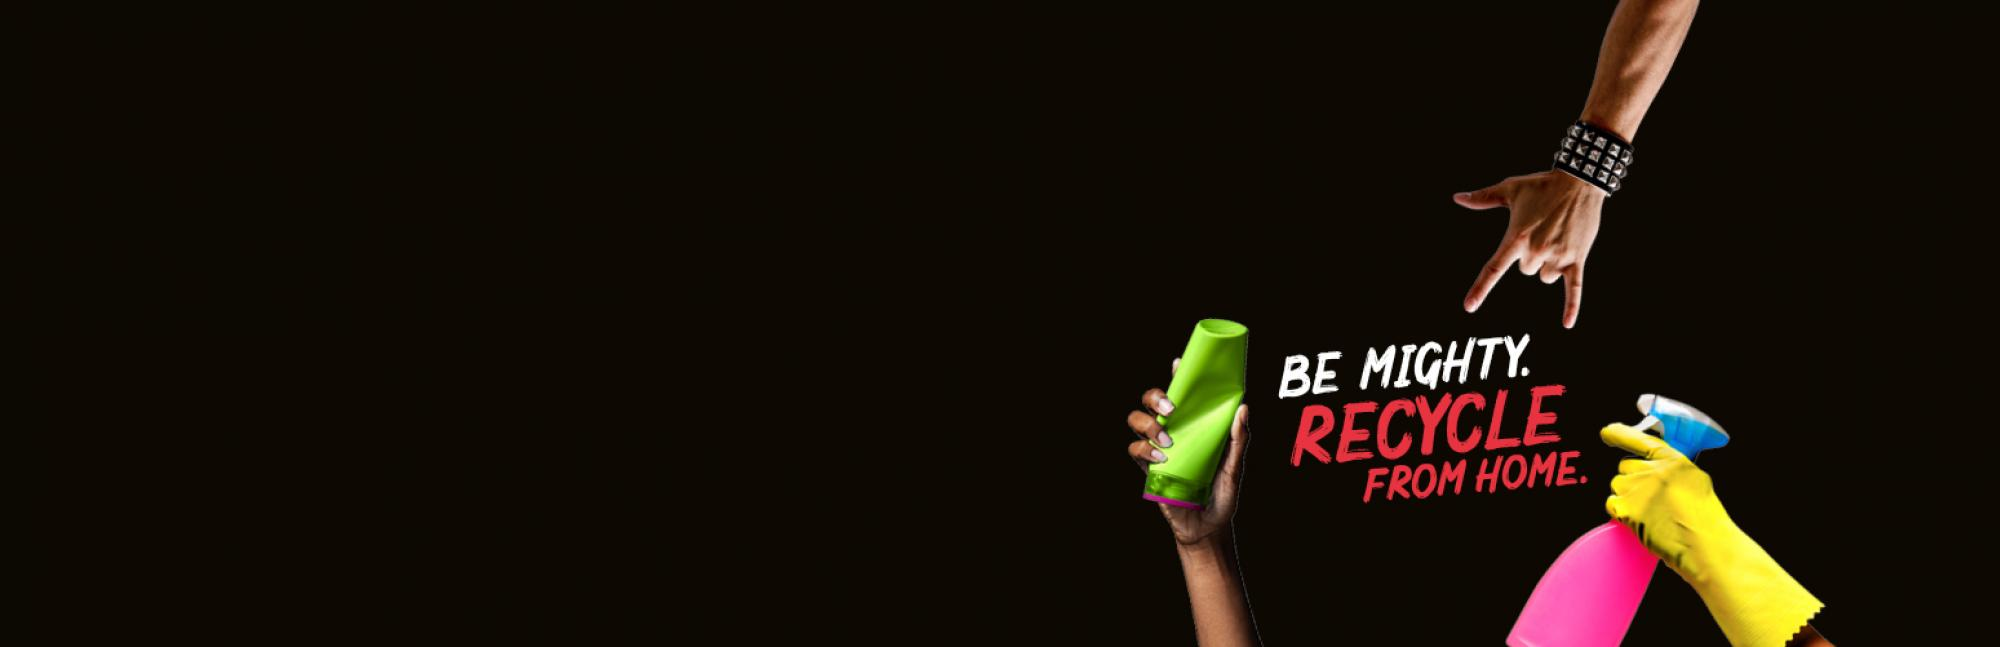 Be Mighty. Recycle. Banner with slogan and hands on a black background